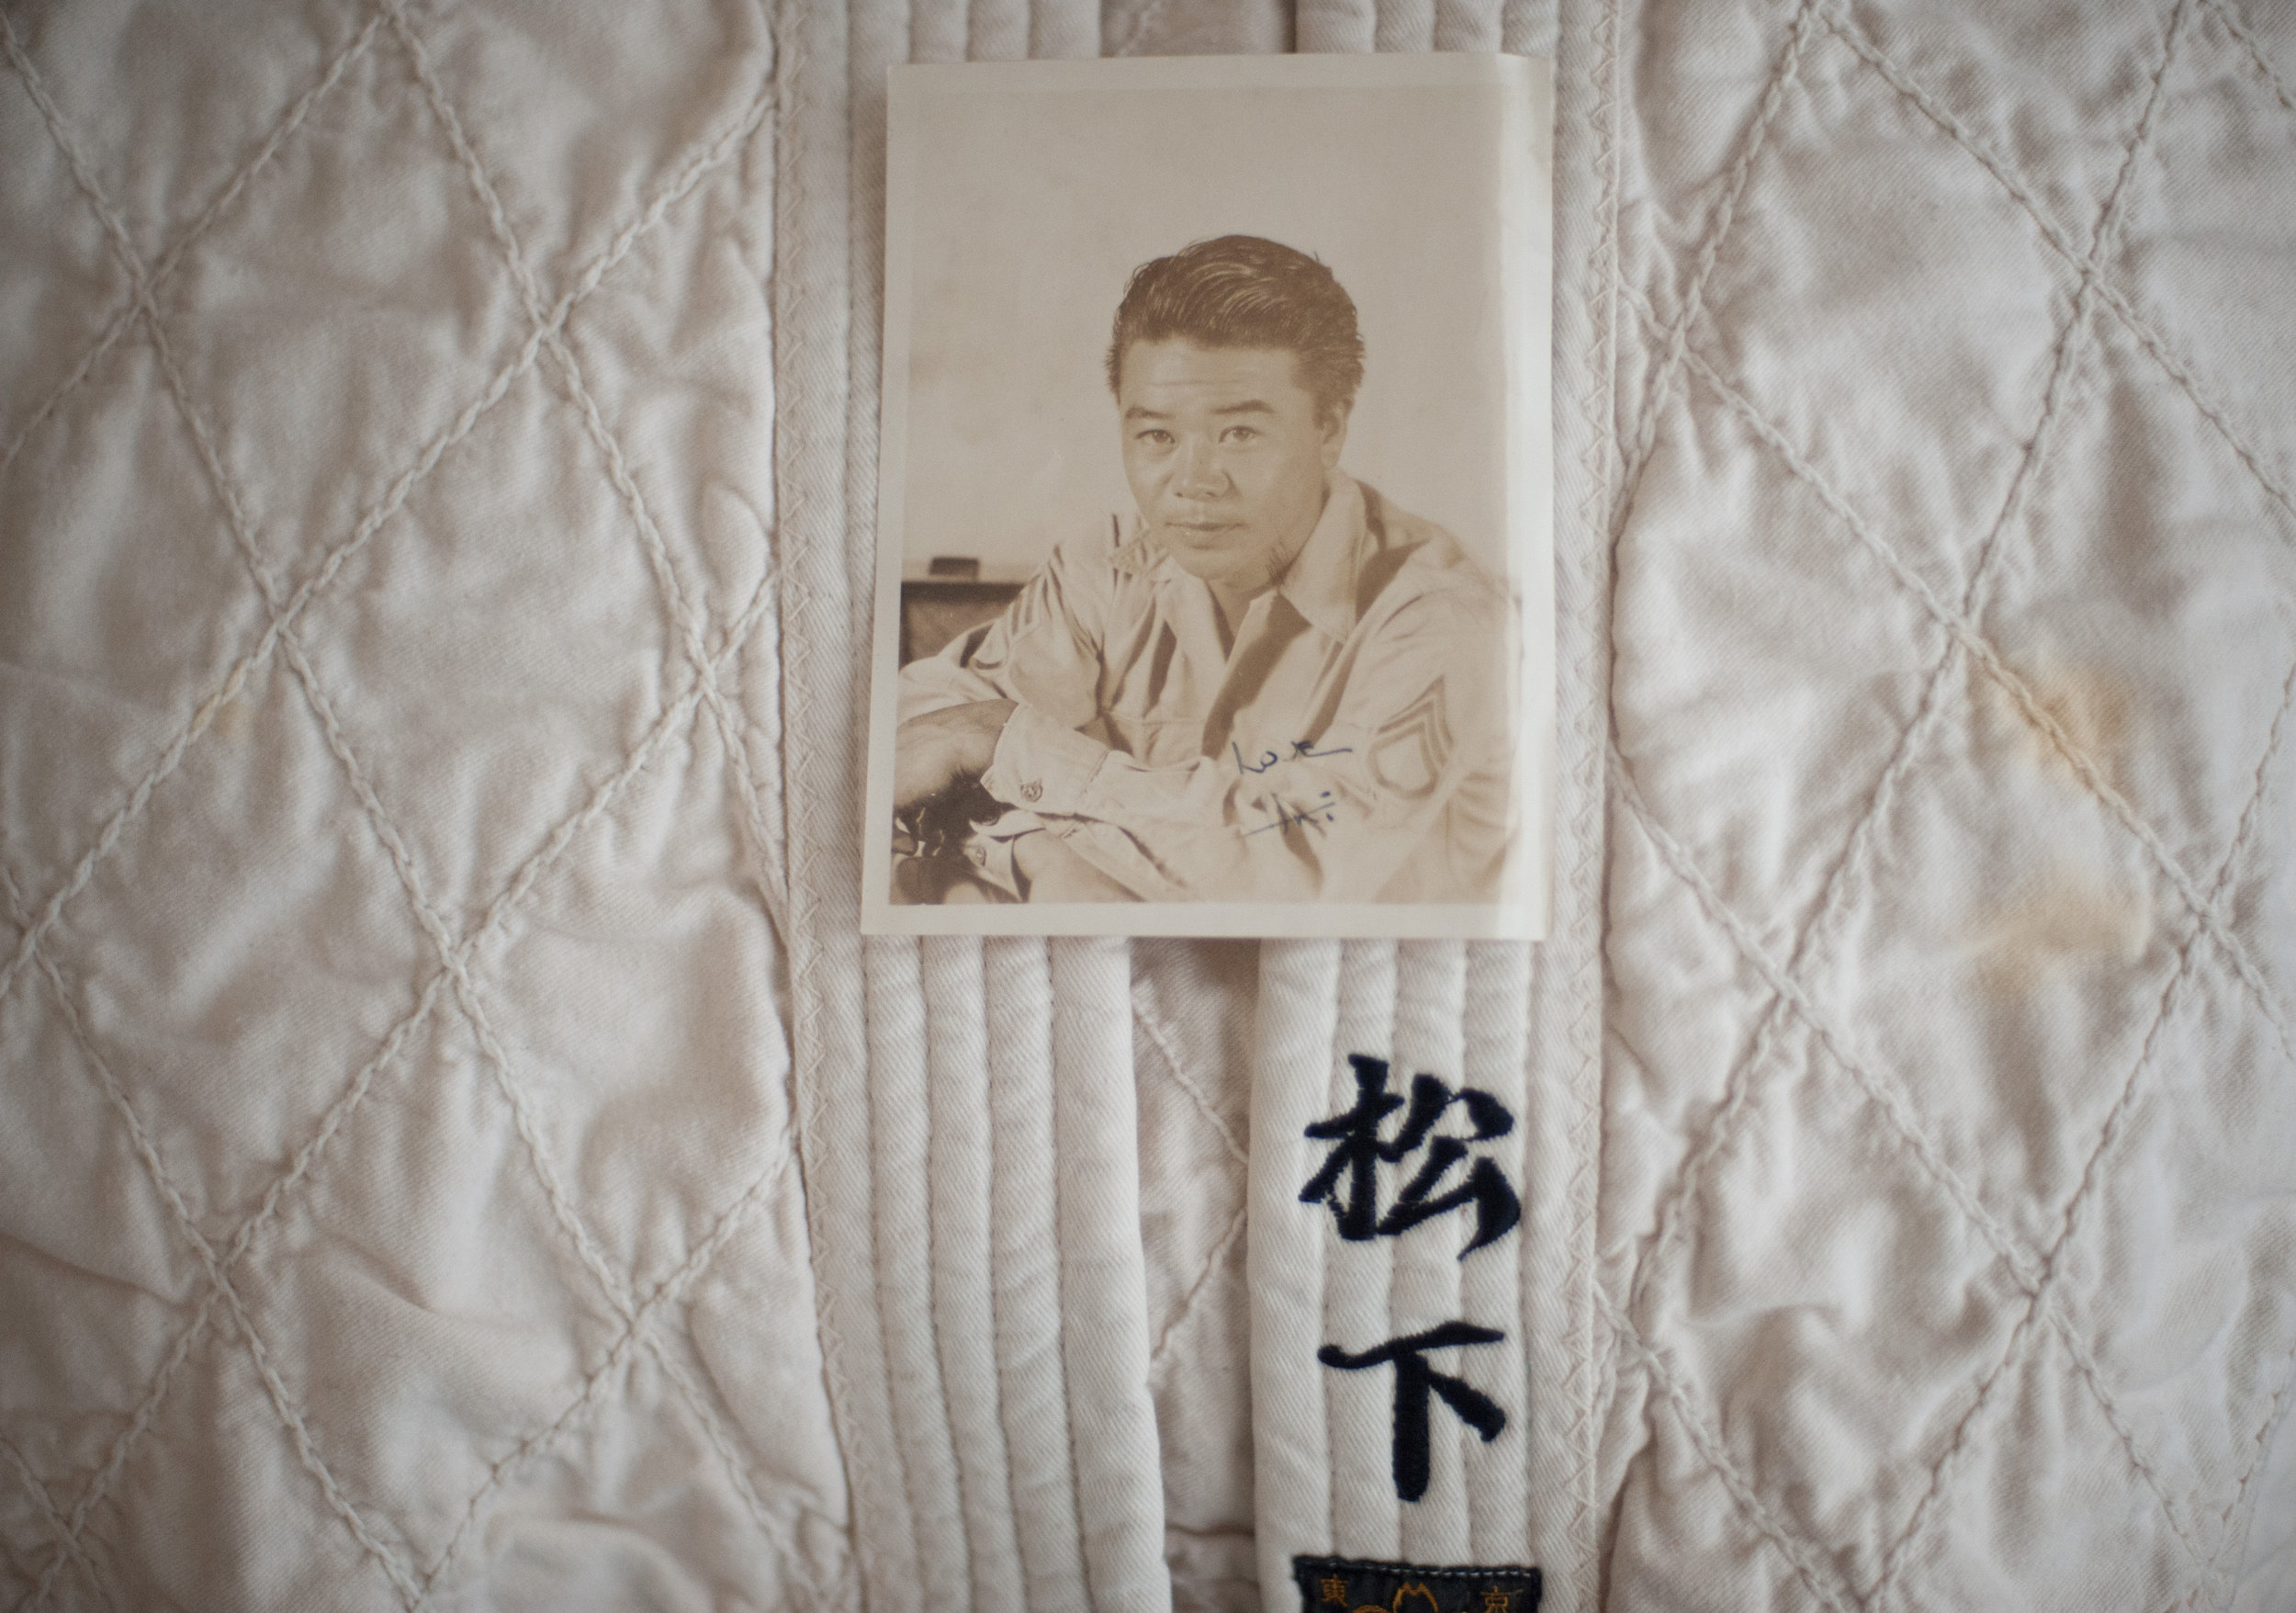 """Akira Matsushita, seen here in an official Army portrait signed """"Love, Aki,"""" earned a black belt in judo before the war. Elaine treasures his old judo robe, or  gi , embroidered with his name in kanji characters. When Elaine's brother was young, Akira drove him to judo; he also got a black belt. Later, when his grandsons were kids, he drove them to judo, too."""